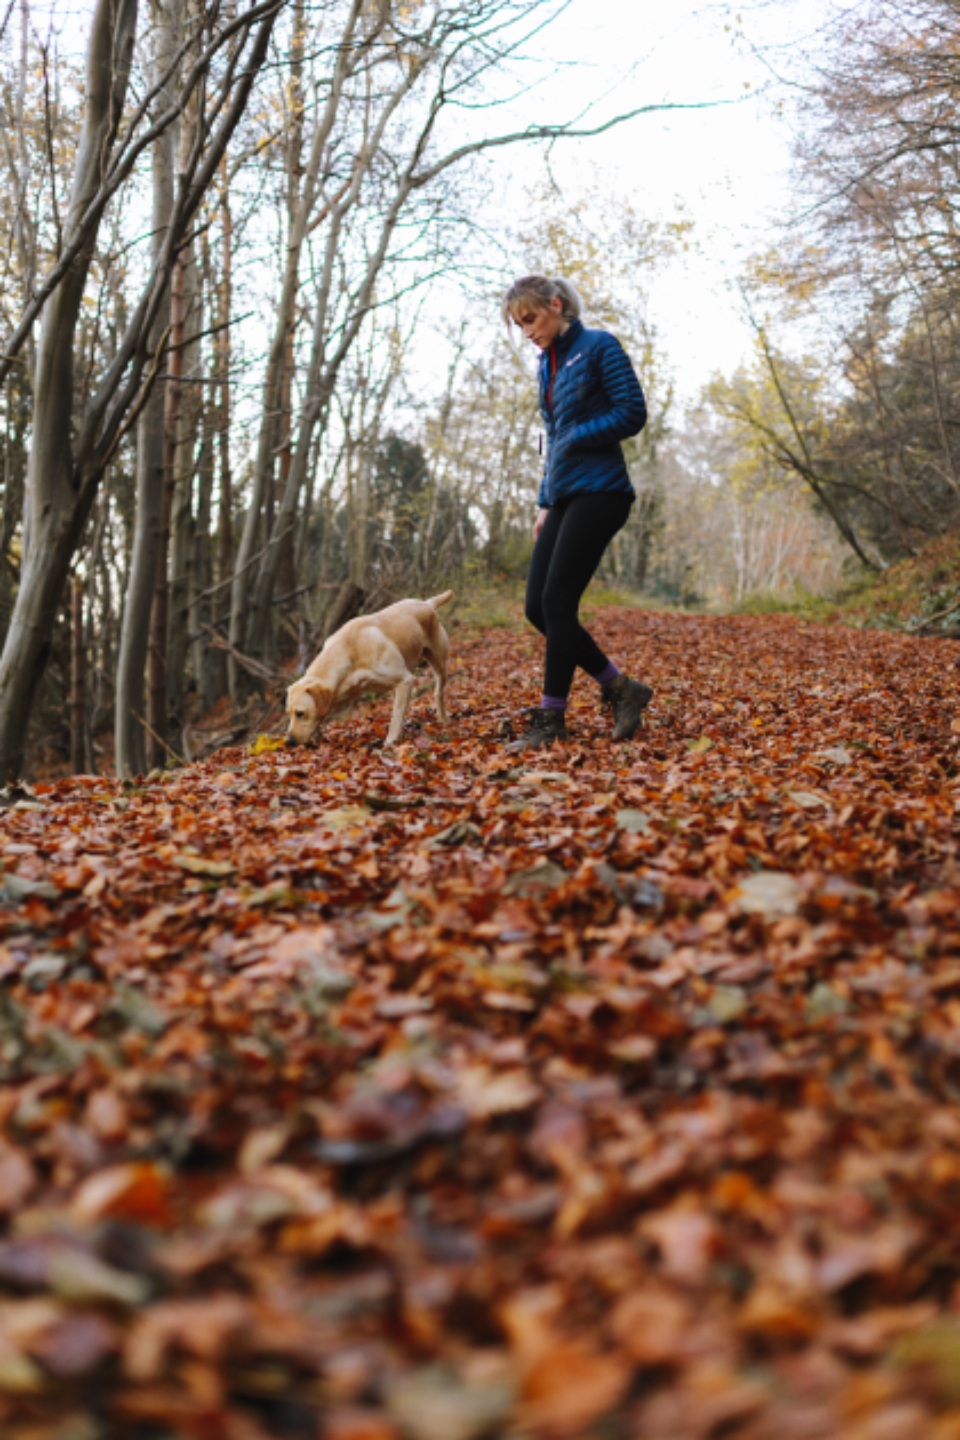 dog walking hiking pet animal nature outdoors fall foliage woman girl trees forest path leaves environment